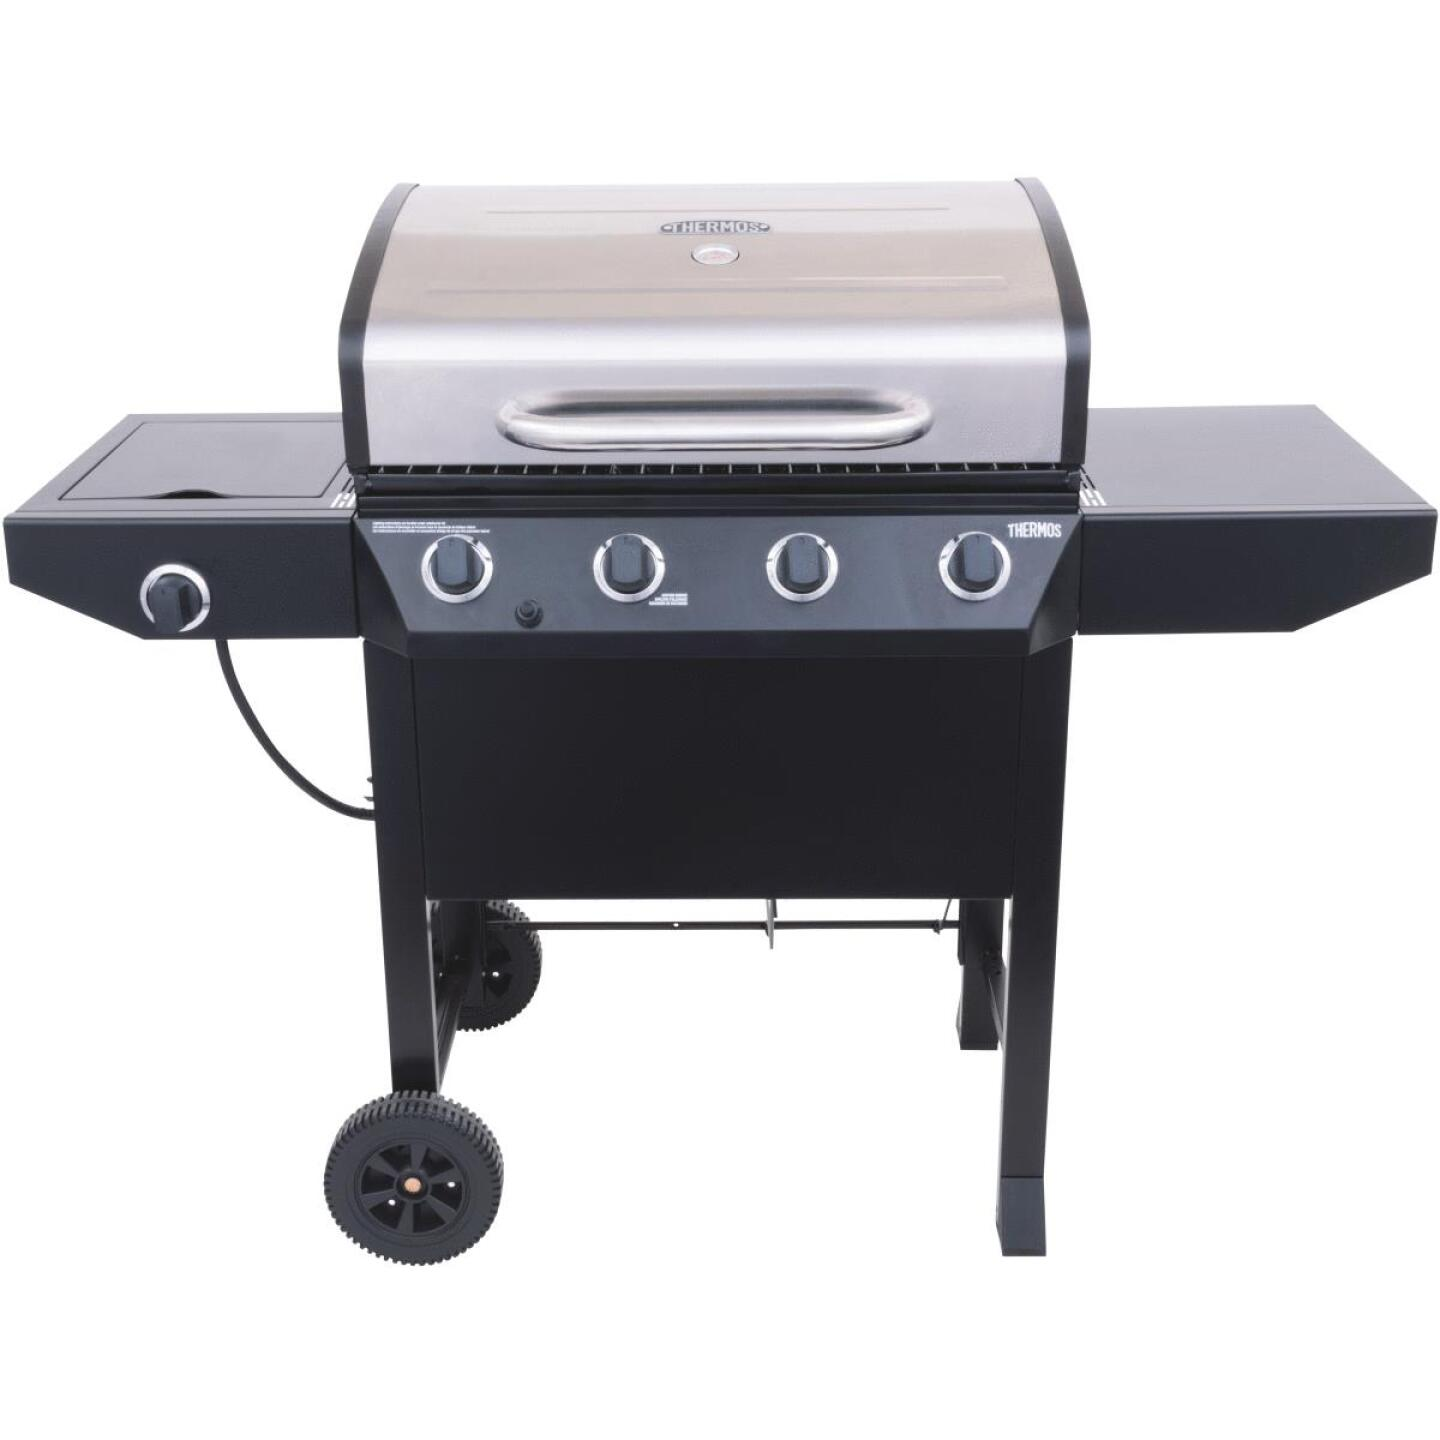 Thermos 4-Burner Stainless Steel 38,000-BTU LP Gas Grill with 10,000-BTU Side Burner Image 2